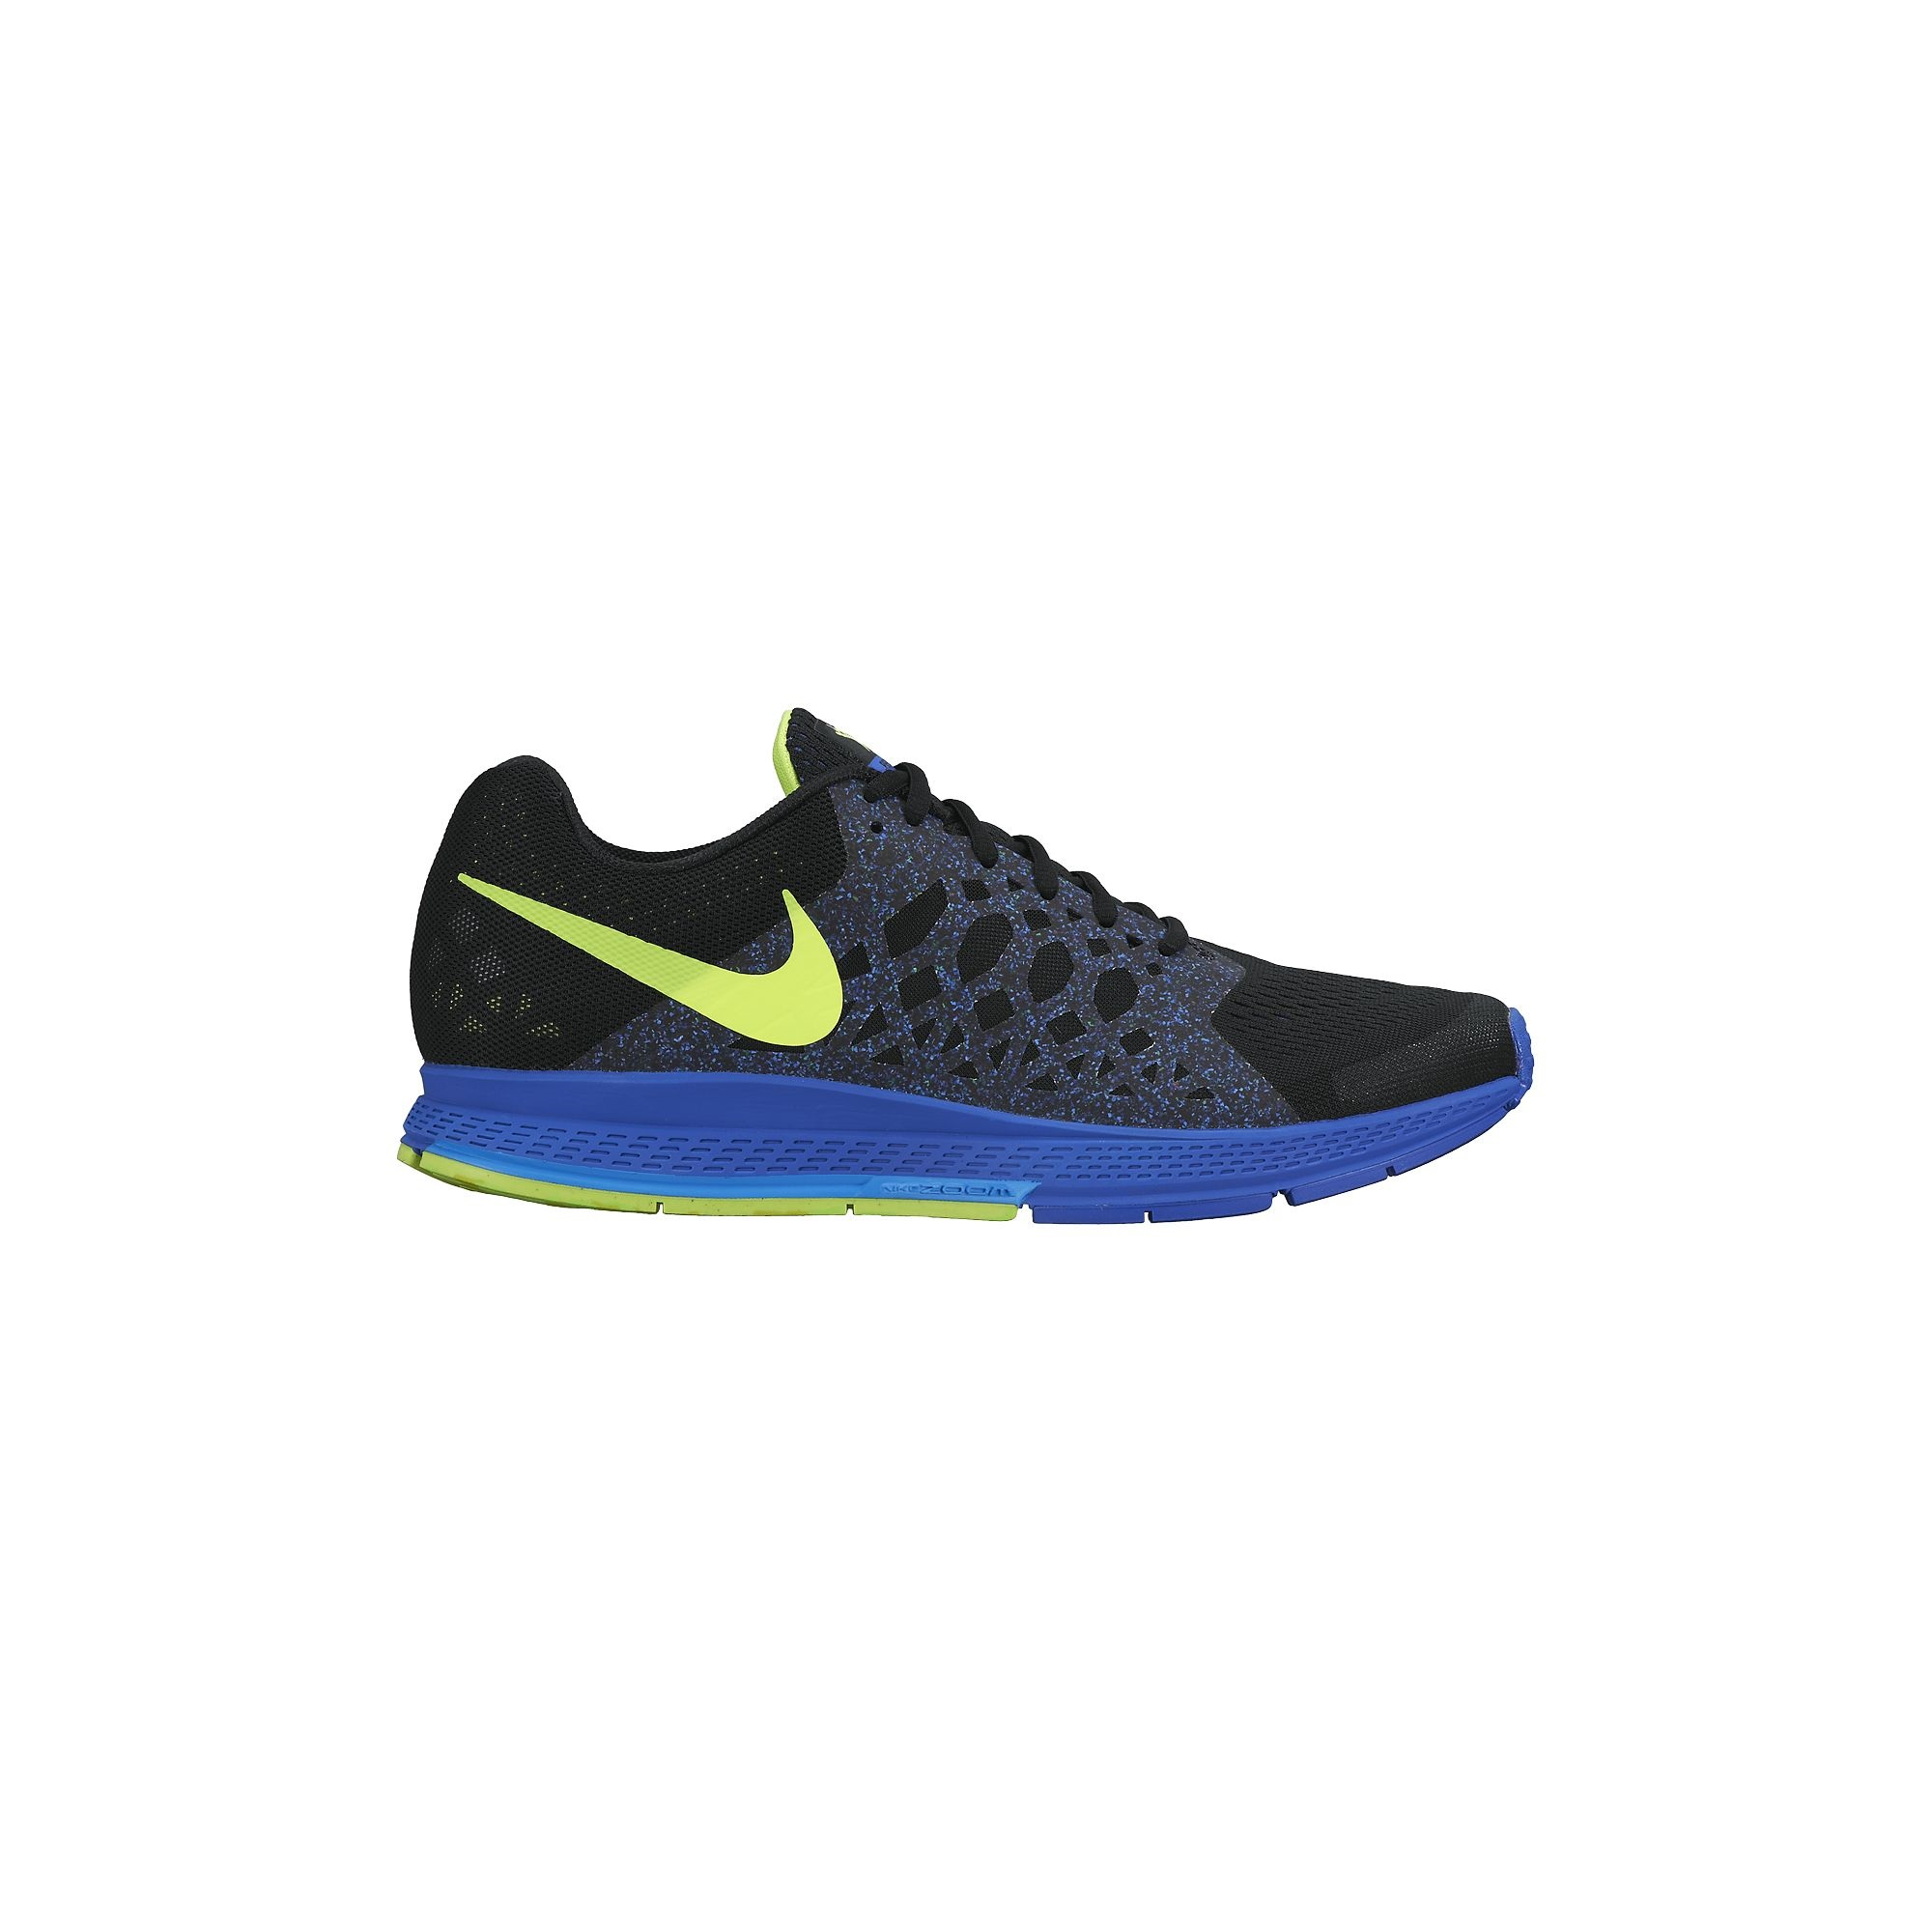 super popular cefc3 1364f NIKE Shoes AIR ZOOM PEGASUS 31 Black Blue Men   Alltricks.com